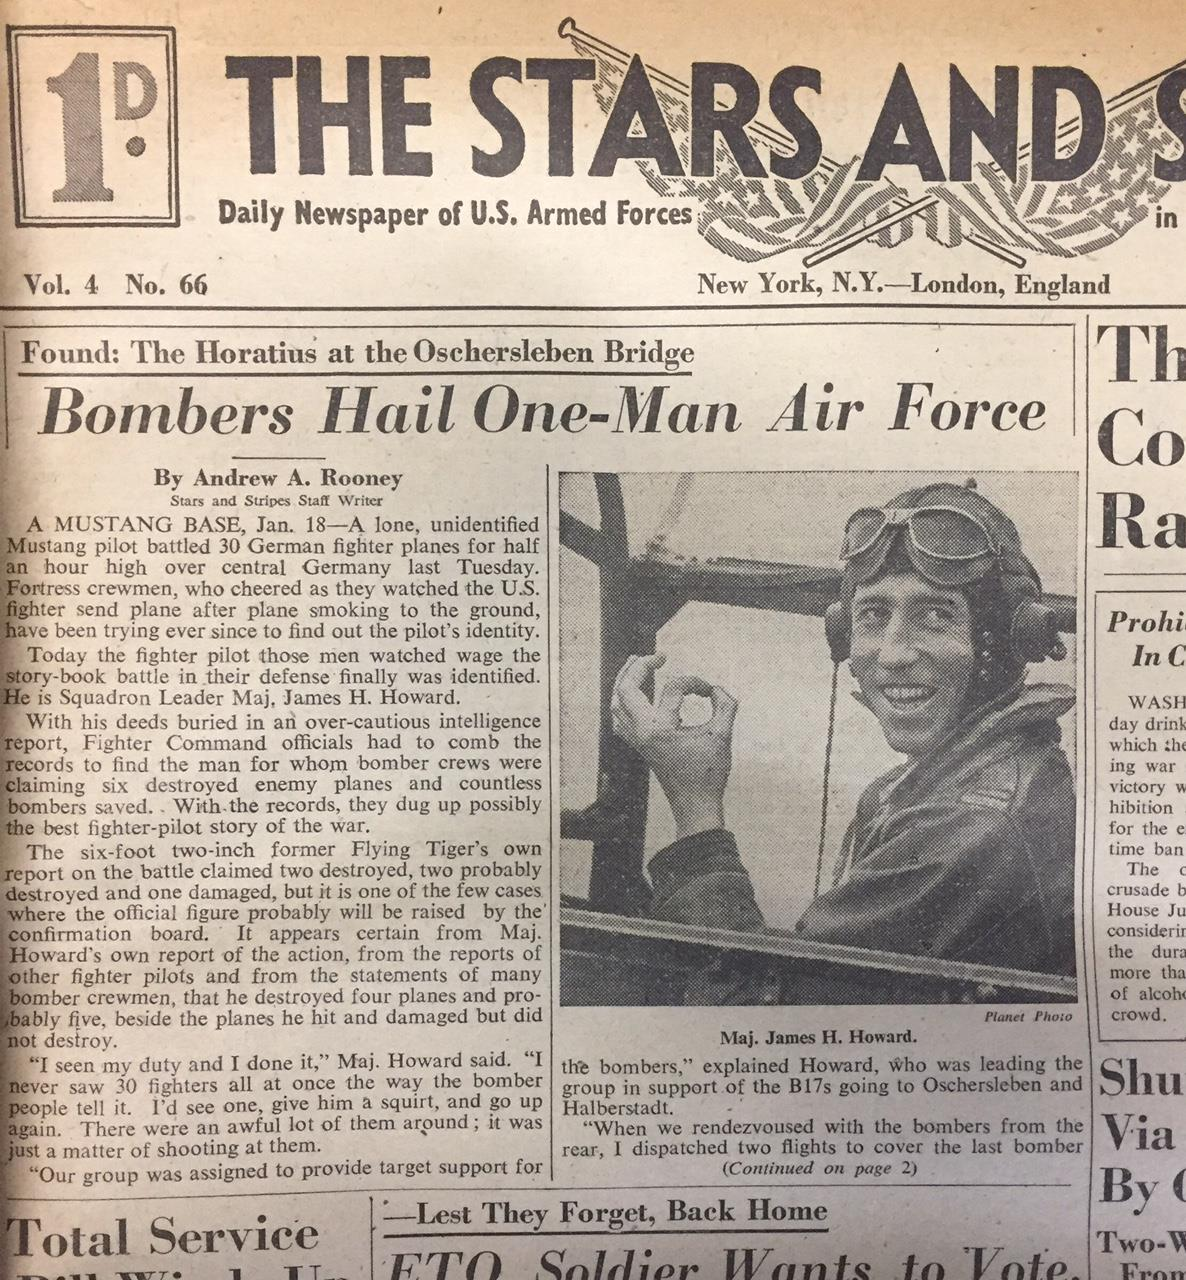 Front Page of the January 19, 1944 issue of The Stars and Stripes